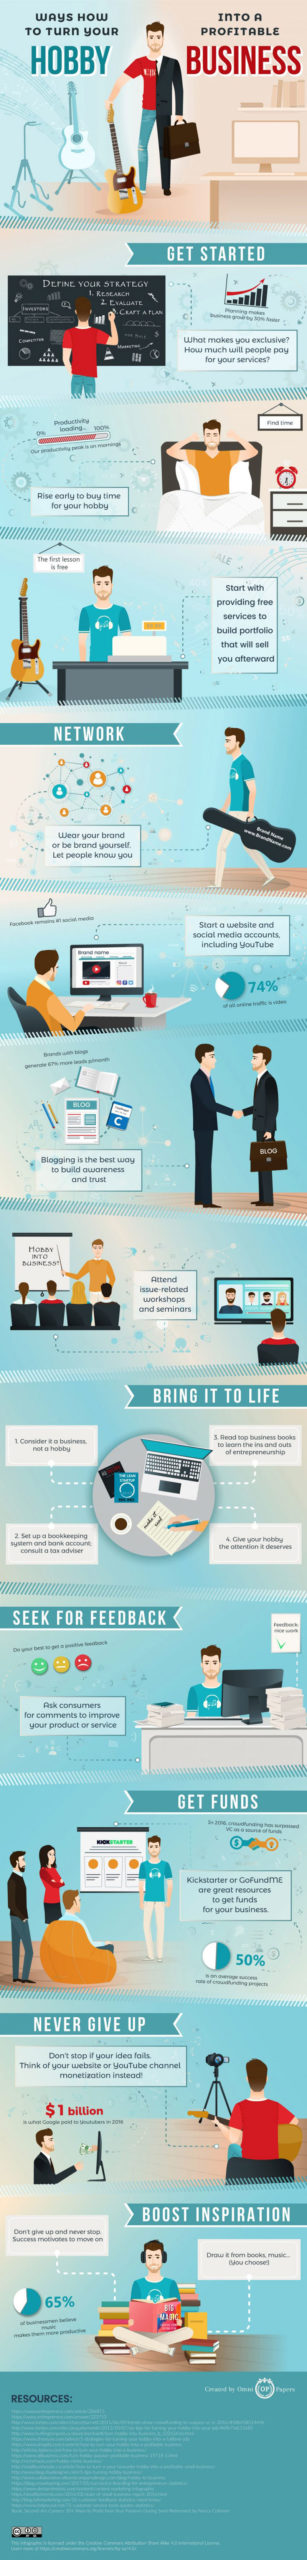 turn hobby into business infographic